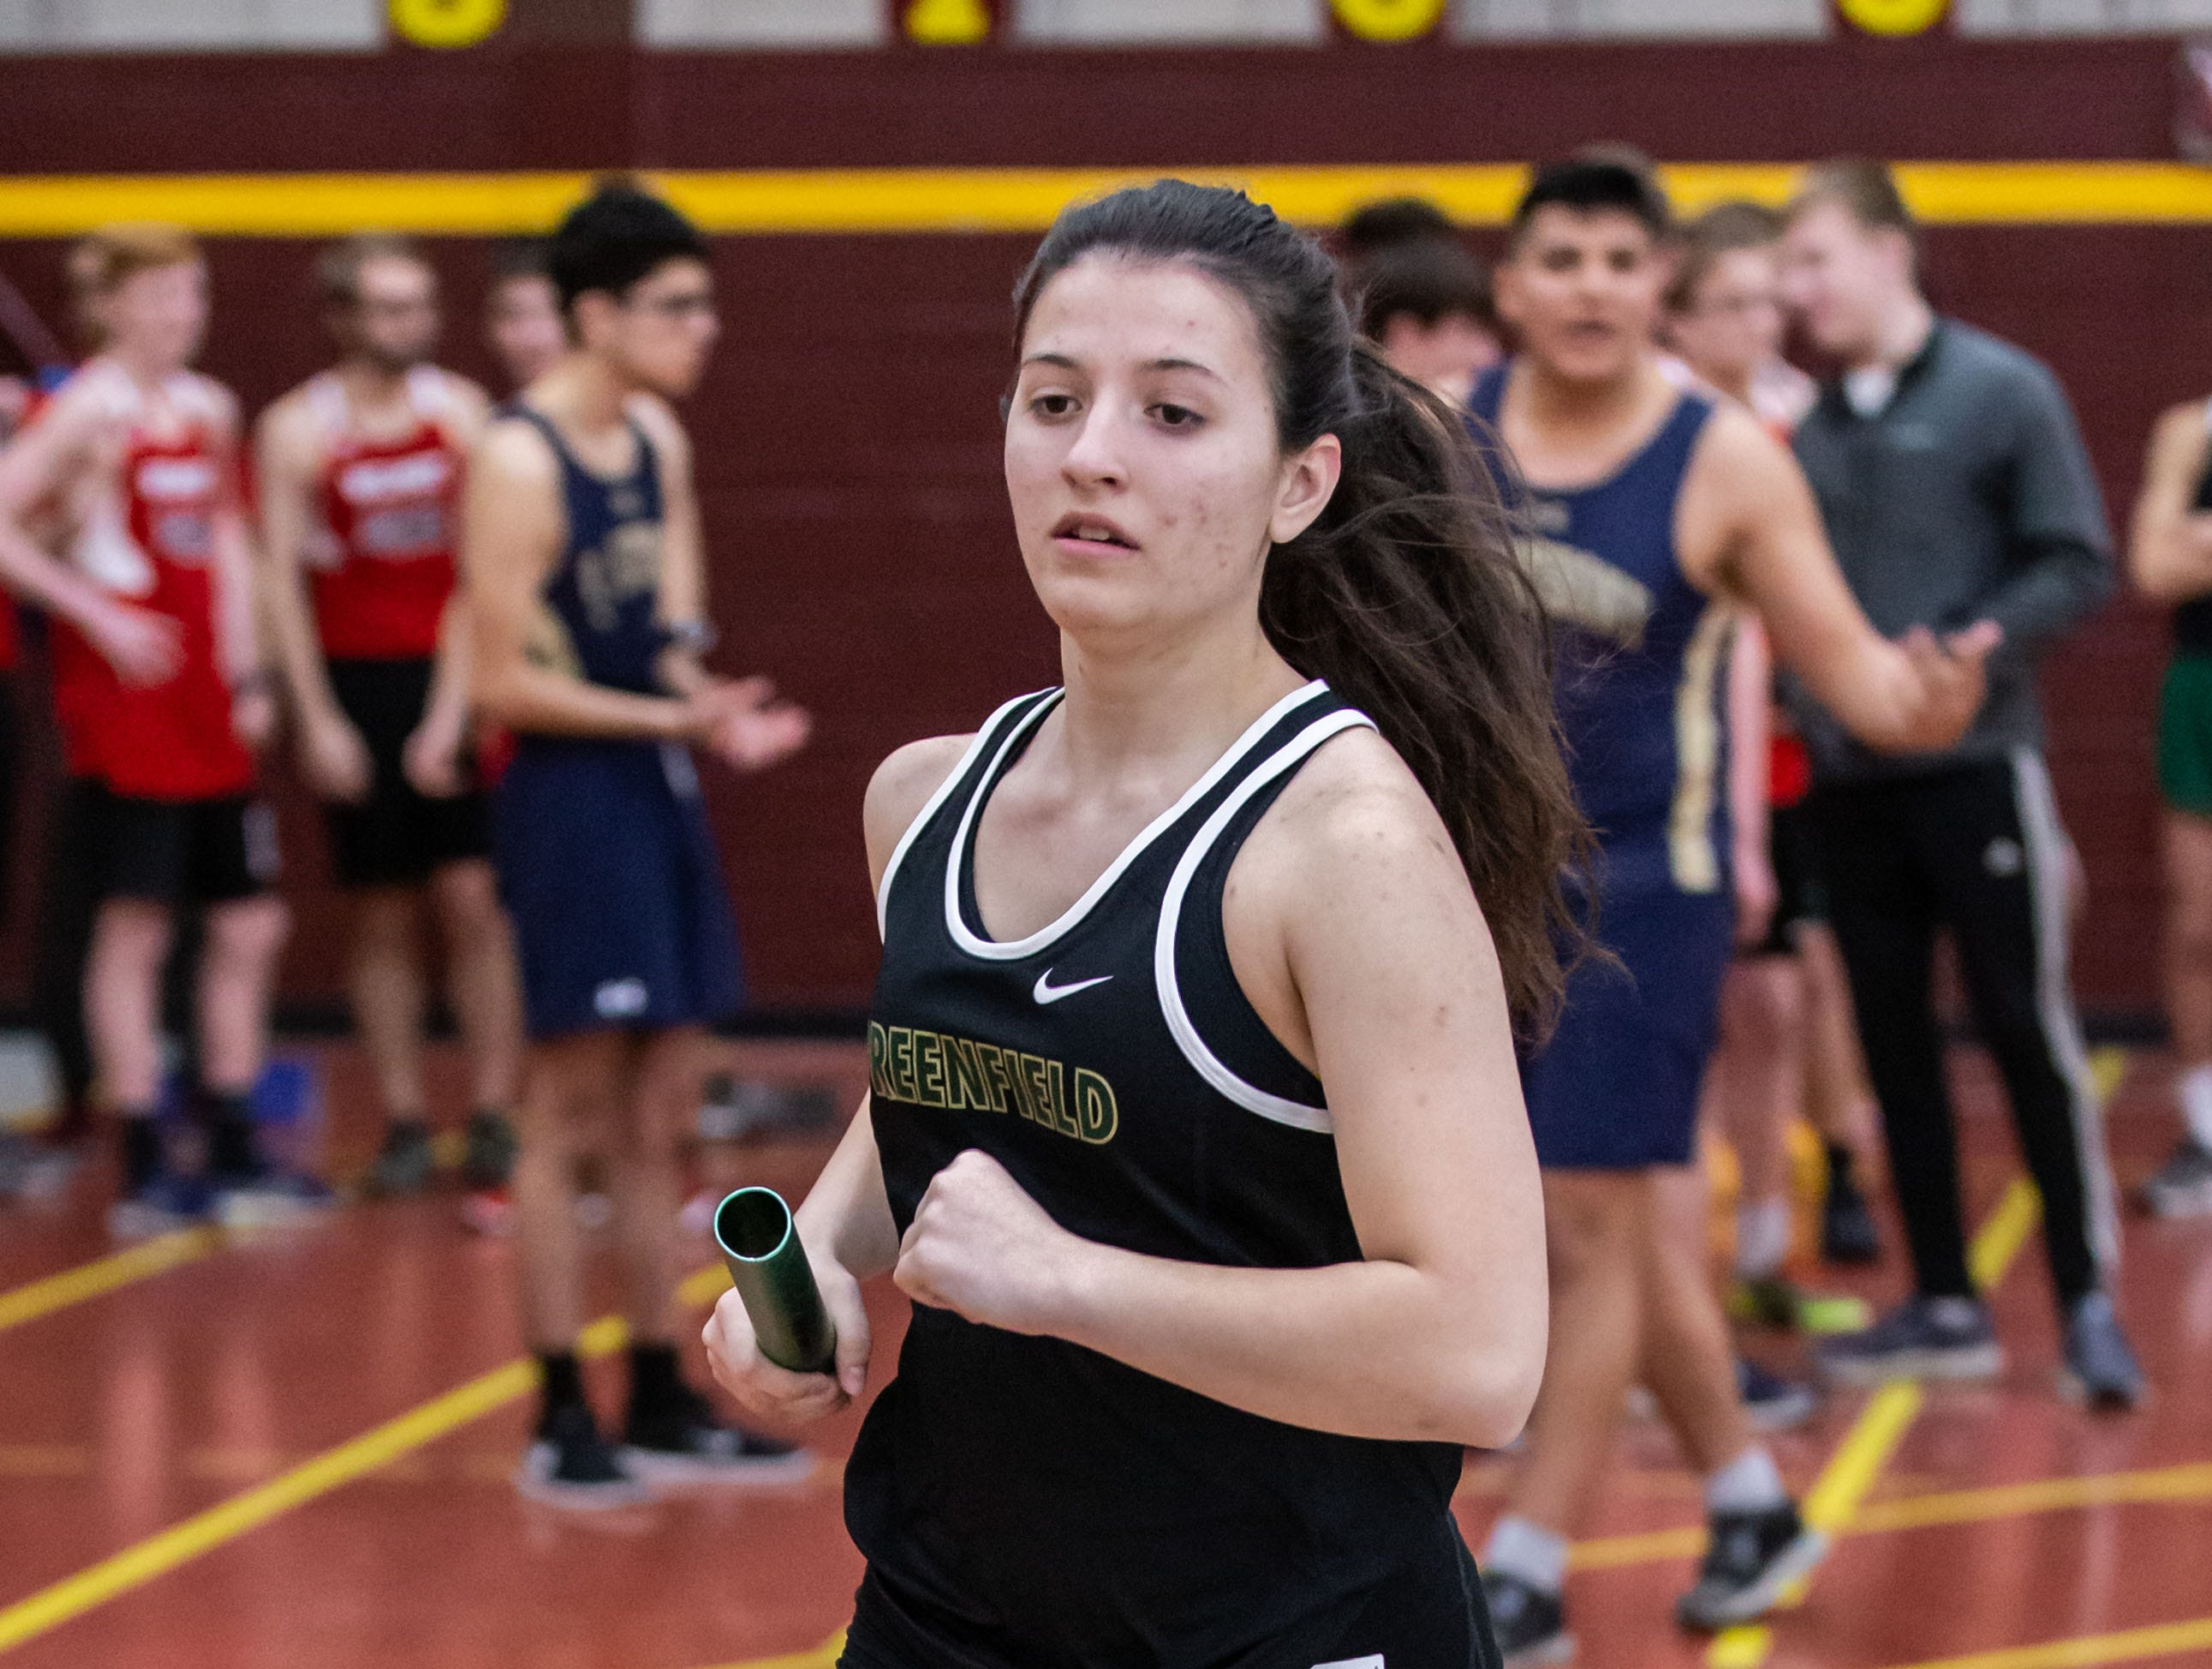 Greenfield's Julianna Schmidt competes in the distance medley relay at the Reinhard Bulldog Relays hosted by West Allis Central on Friday, March 15, 2019.